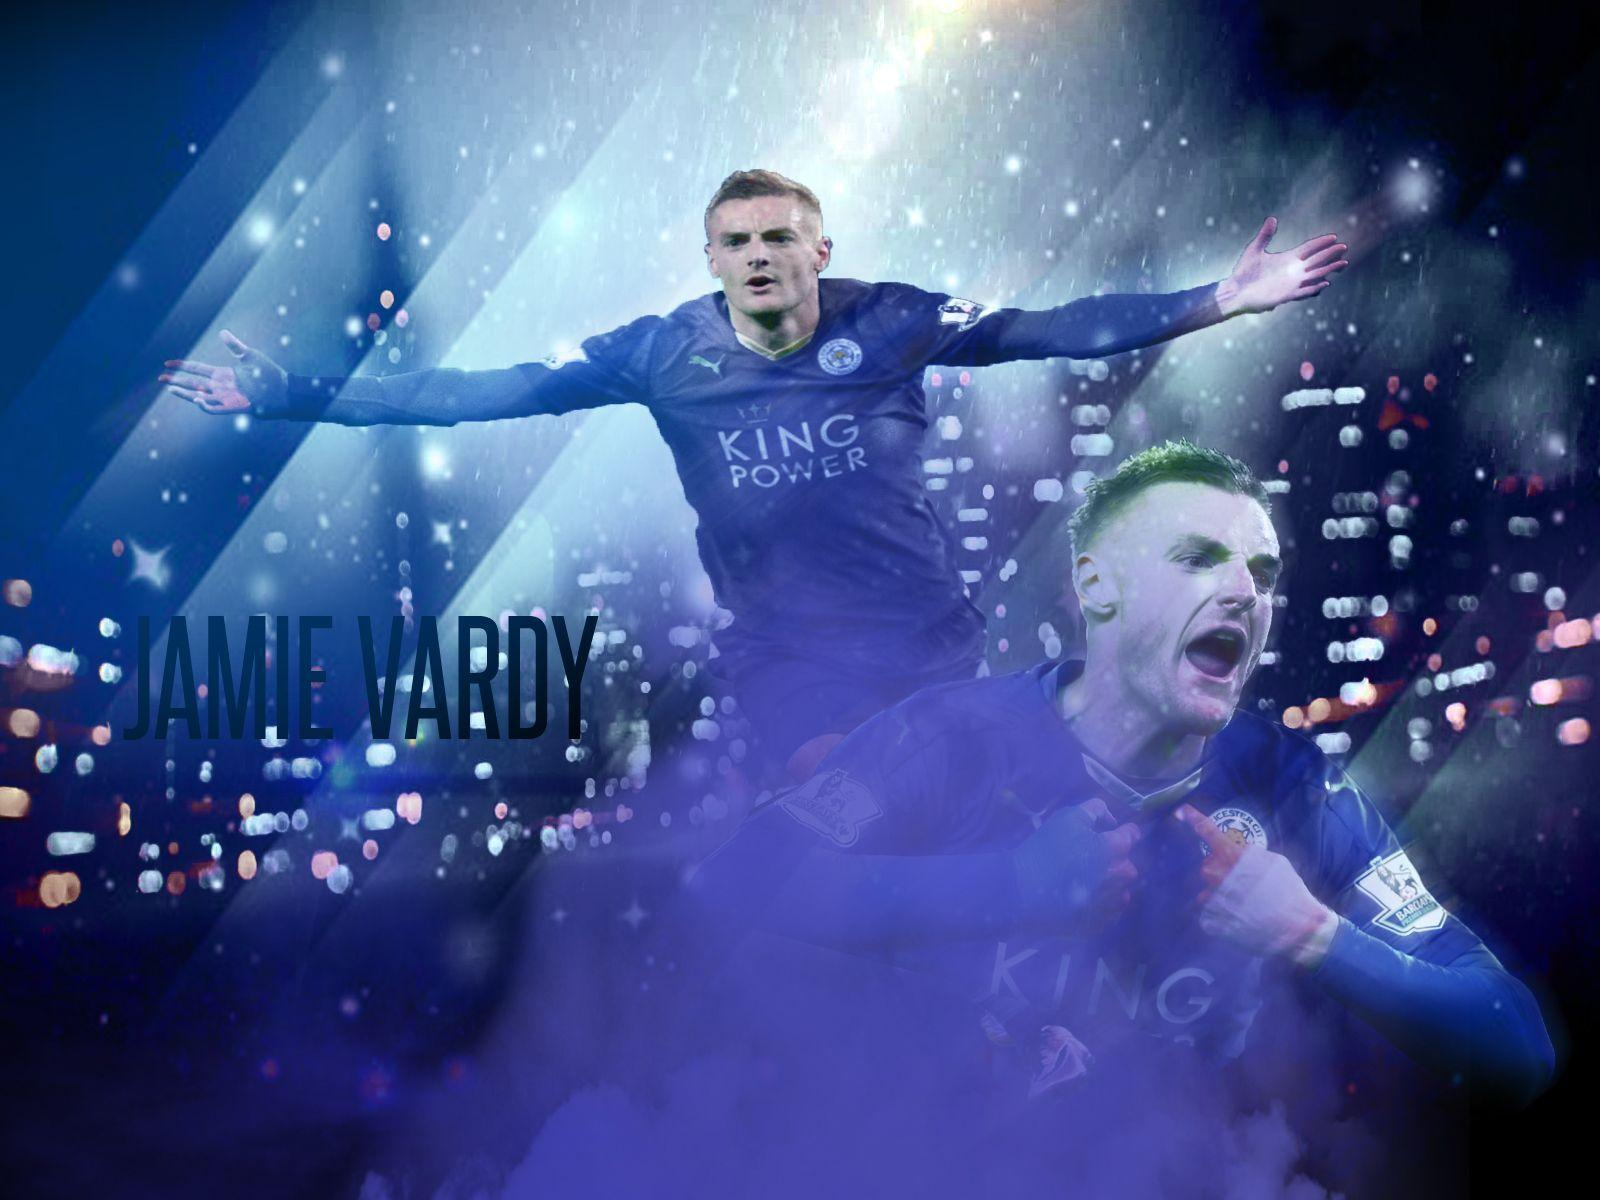 Jamie Vardy wallpapers | Jamie Vardy stock photos